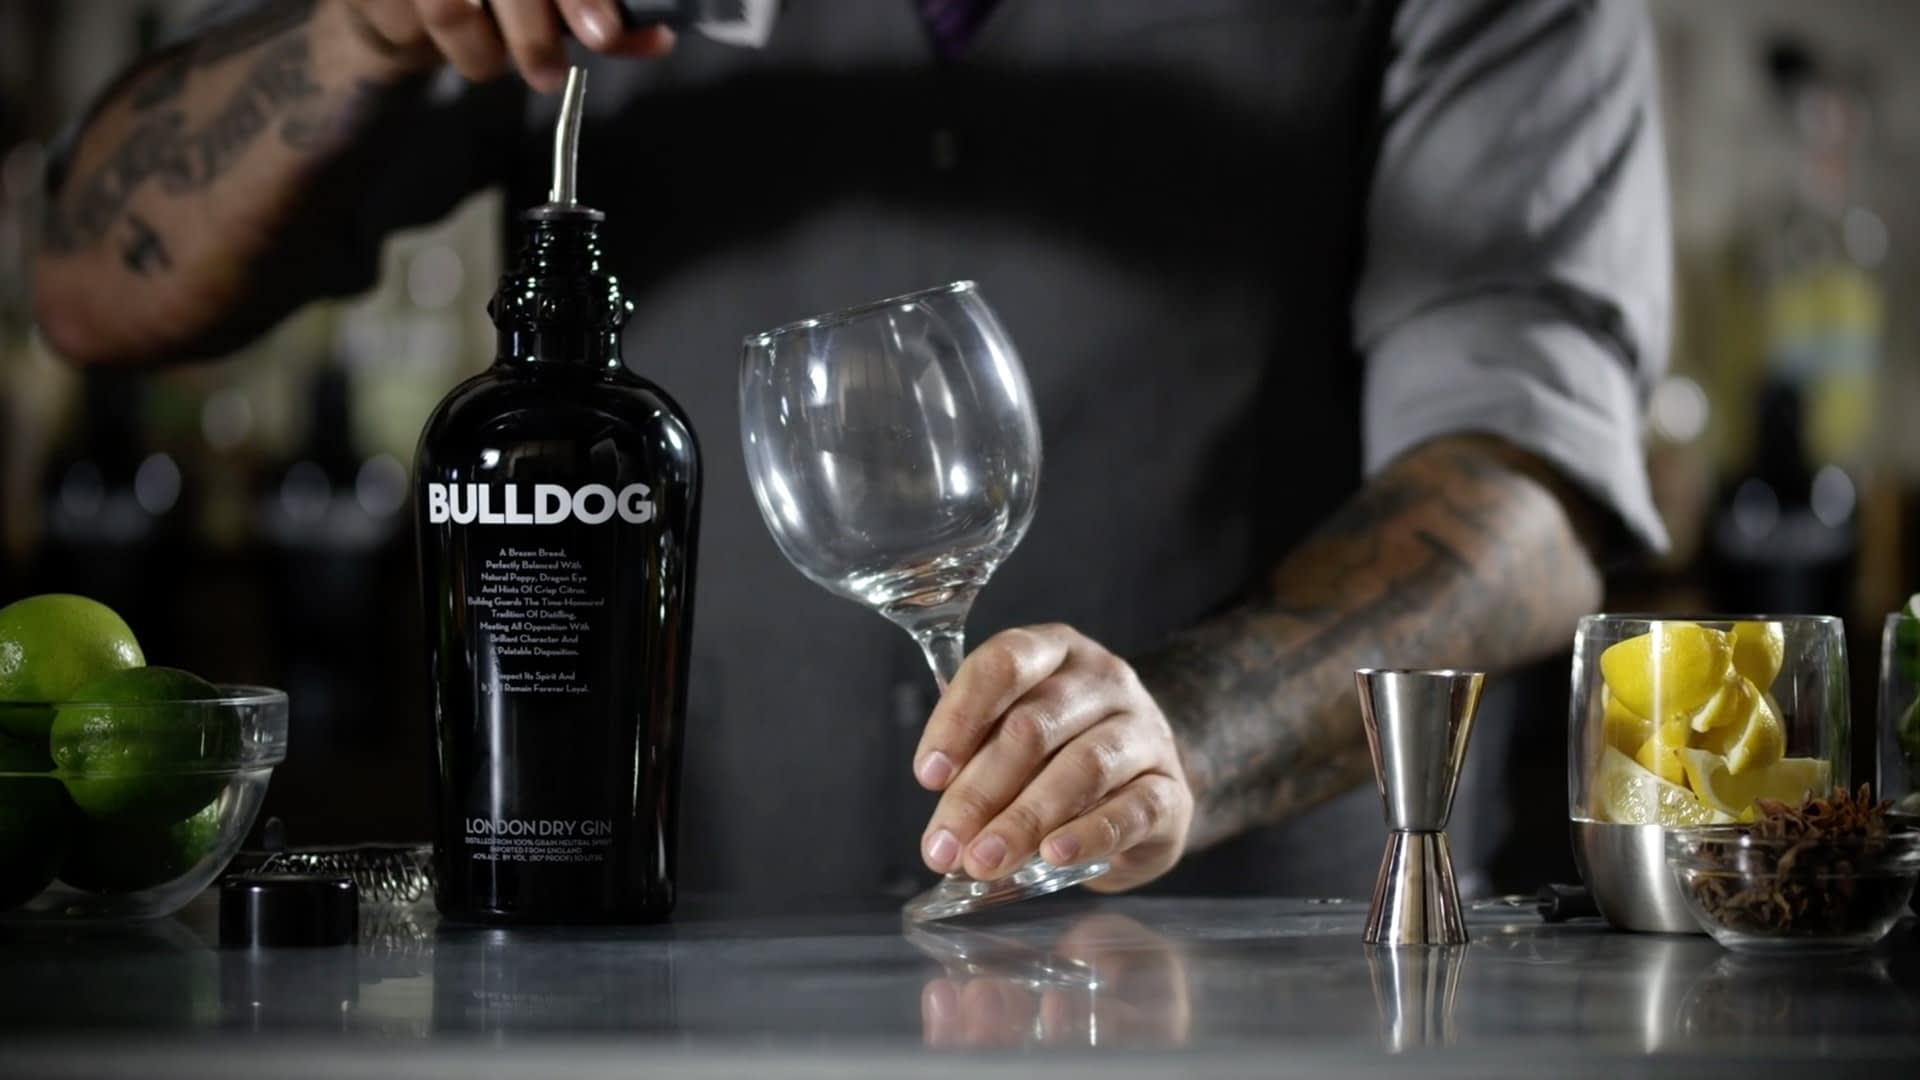 A bartender about to make a drink with bulldog gin.